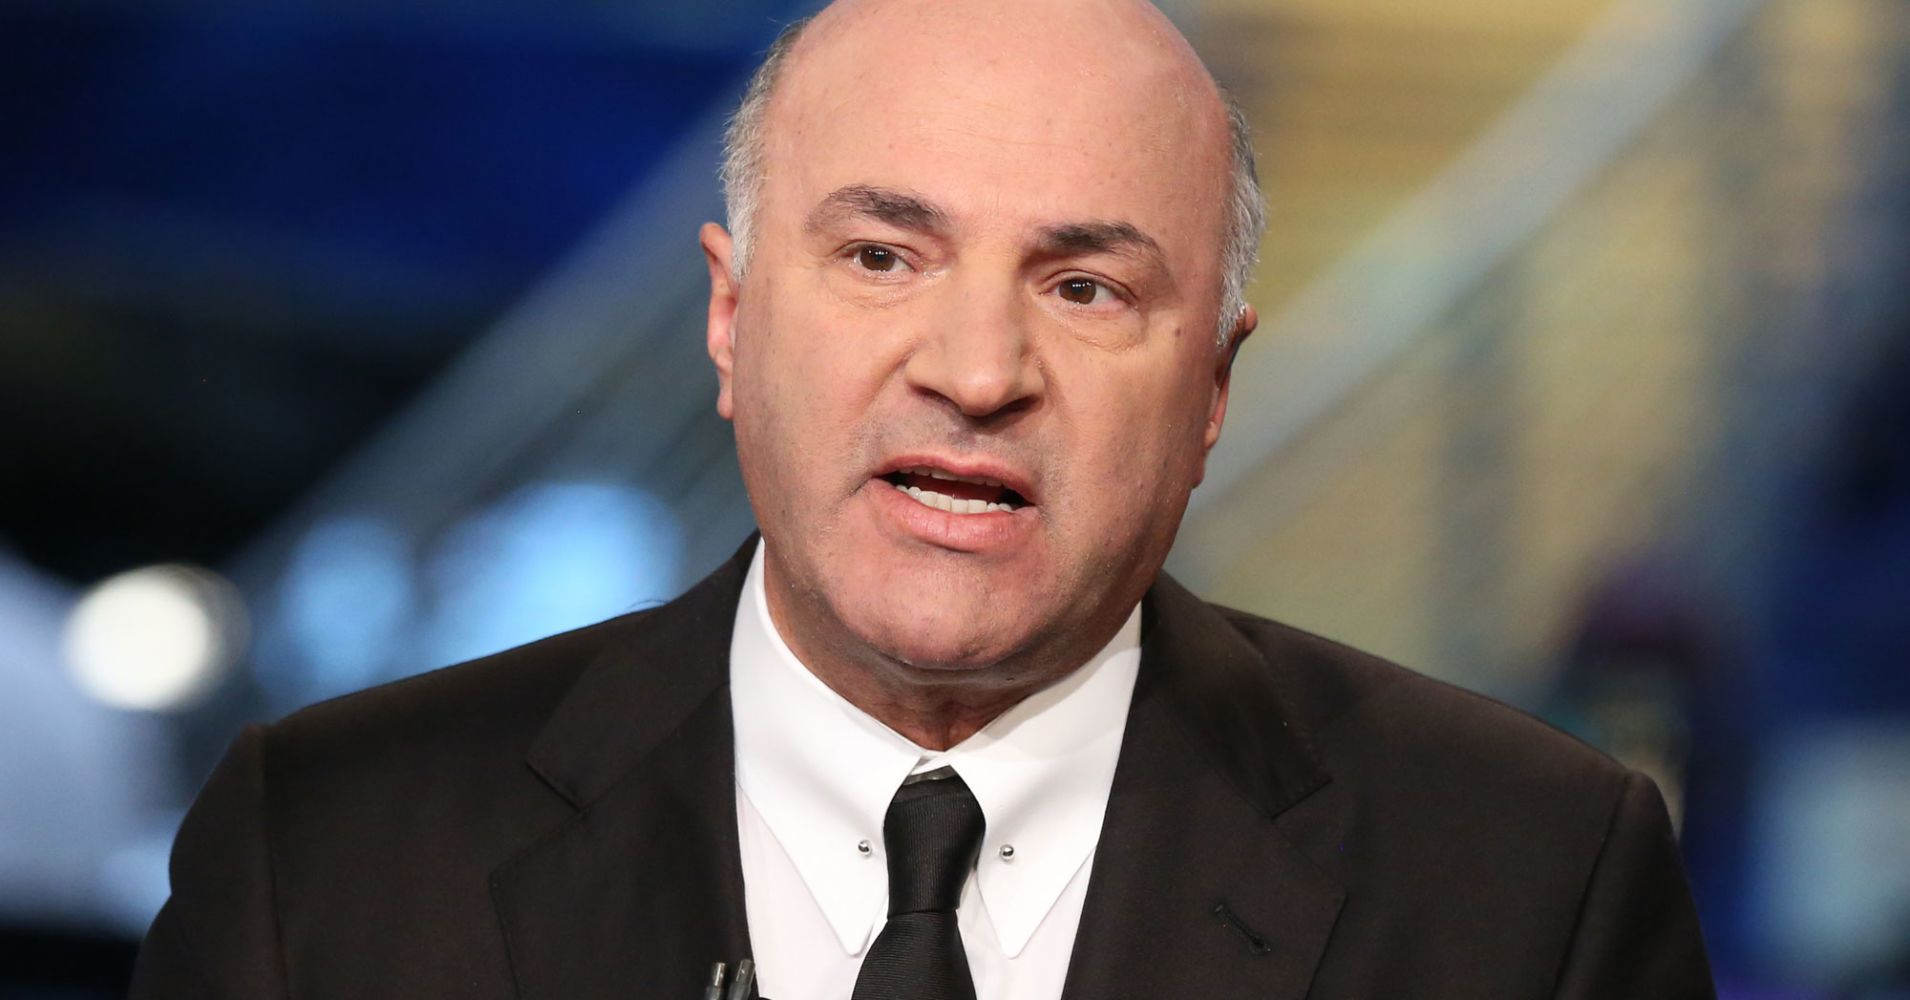 Kevin O'Leary talks about failing as an ice cream scooper